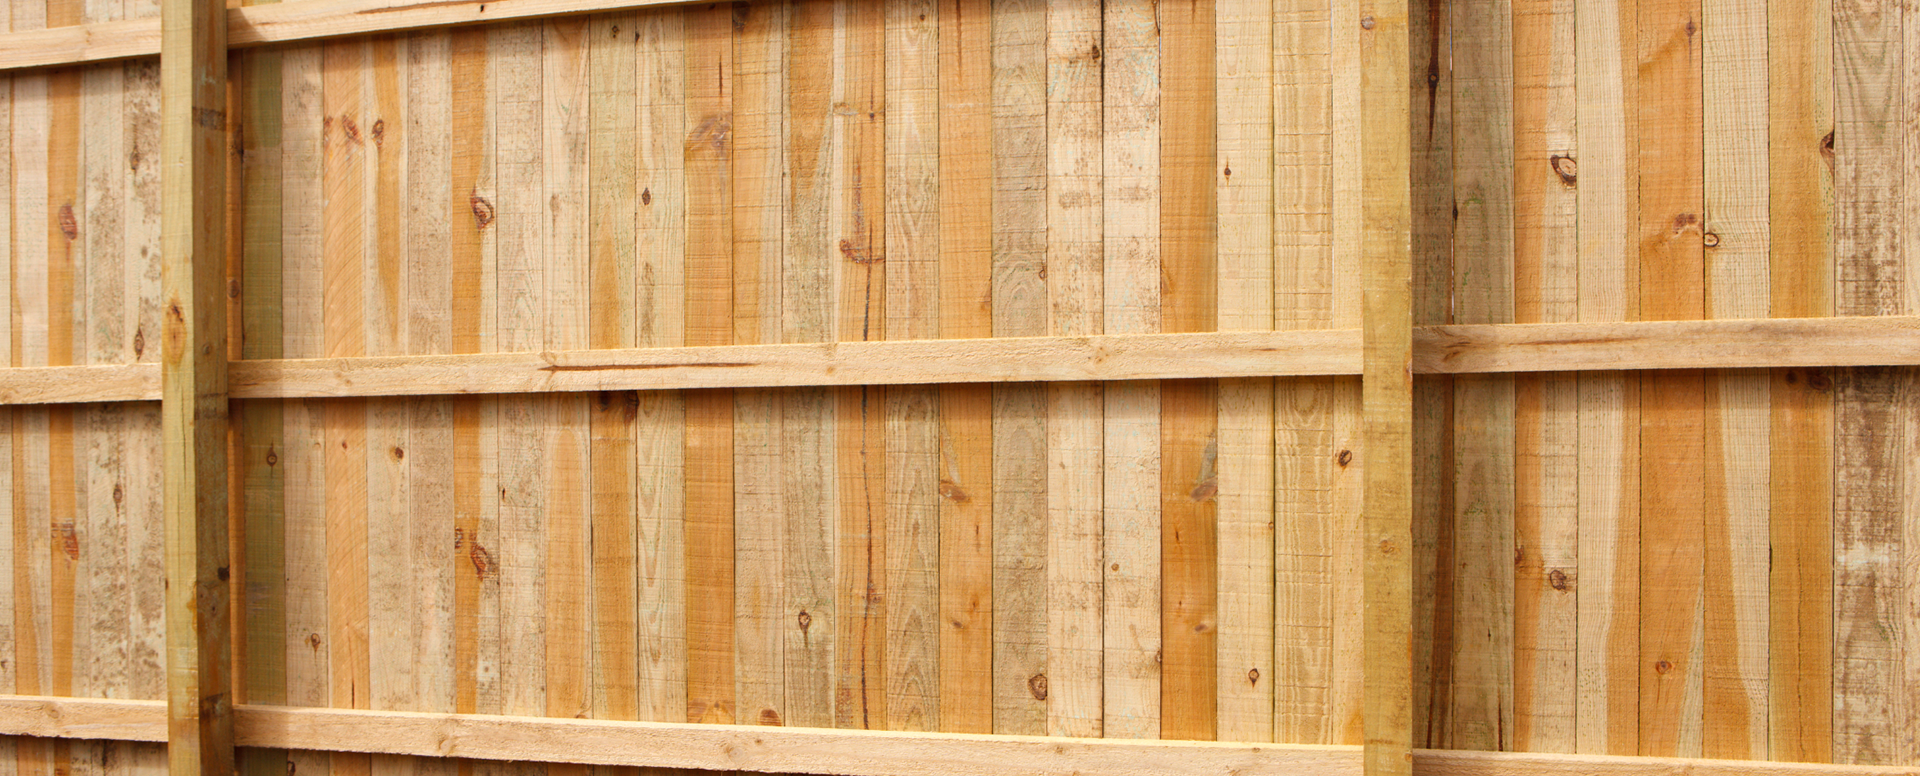 Wood Fence Backgroundtbelford2015 07 11T12:52:38+00:00